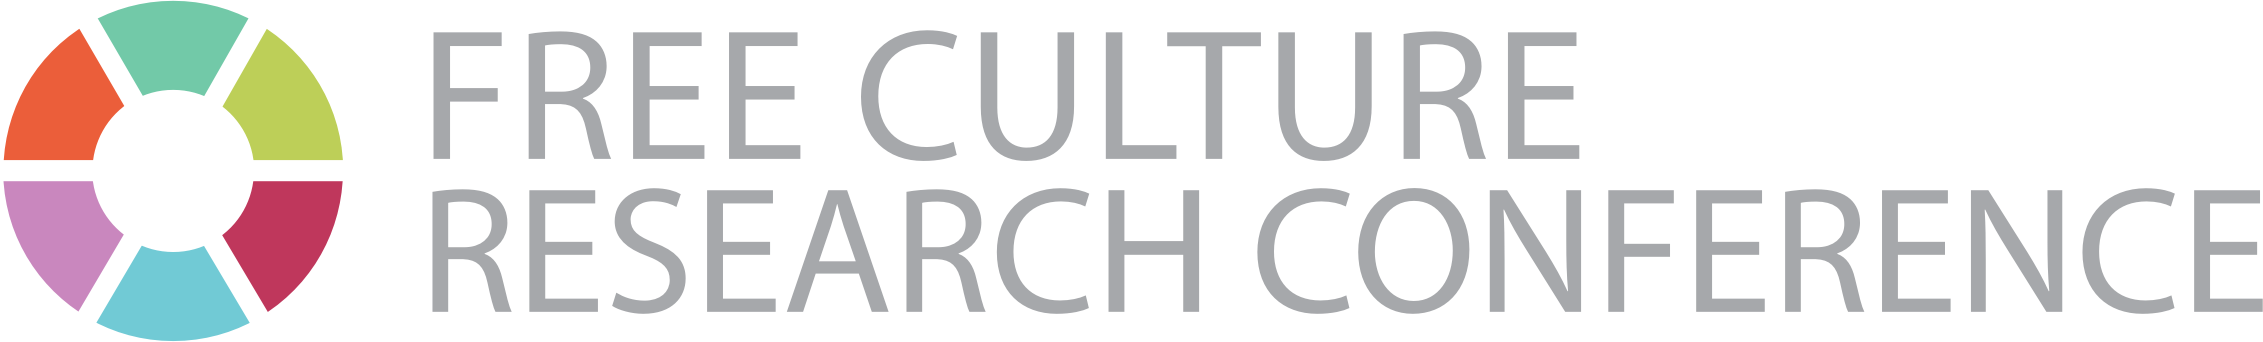 Free Culture Research Conference Logo 2 by hank0071